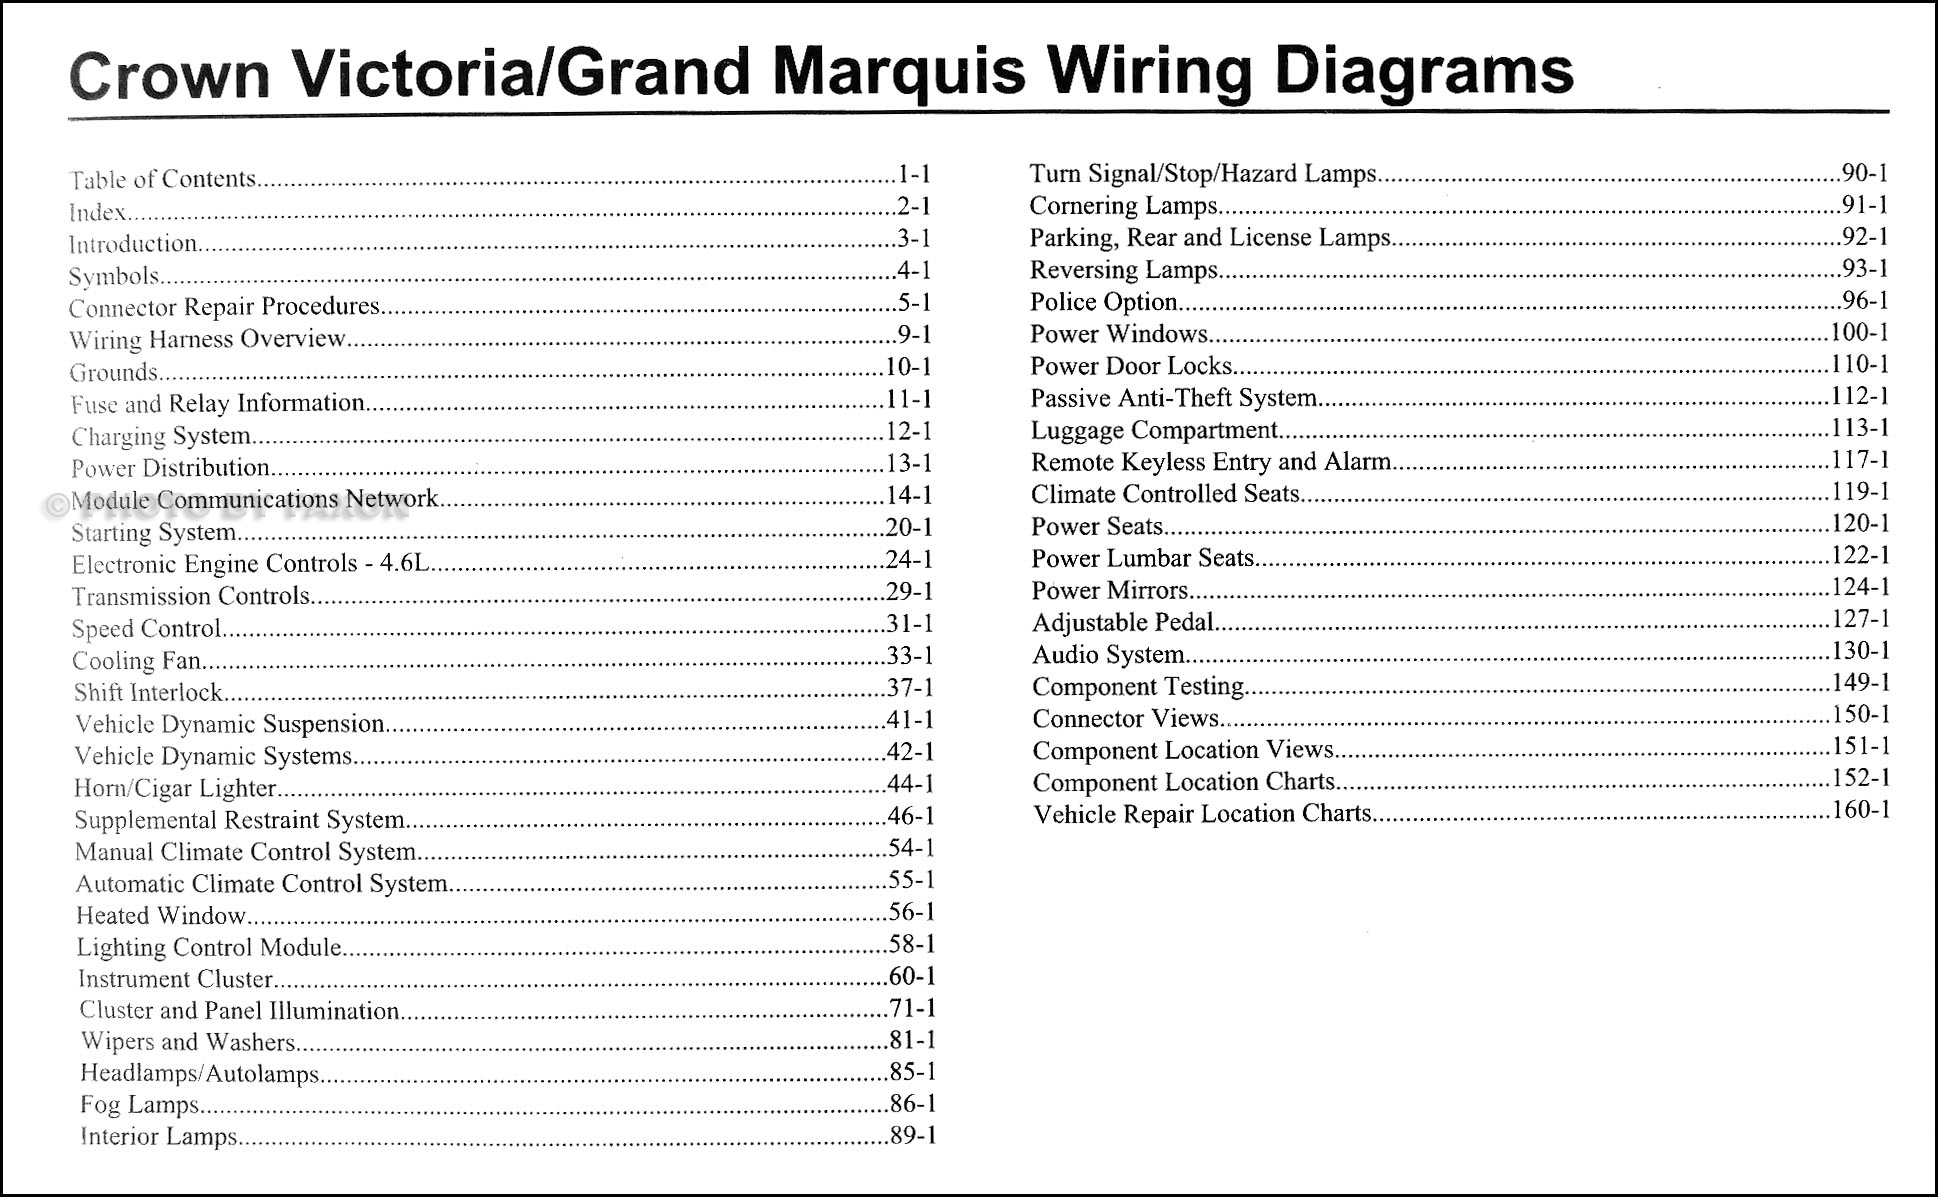 2009FordCrownVictoriaOWD TOC 98 grand marquis wiring diagram f450 wiring diagram \u2022 wiring 1996 mercury grand marquis fuse box diagram at bakdesigns.co